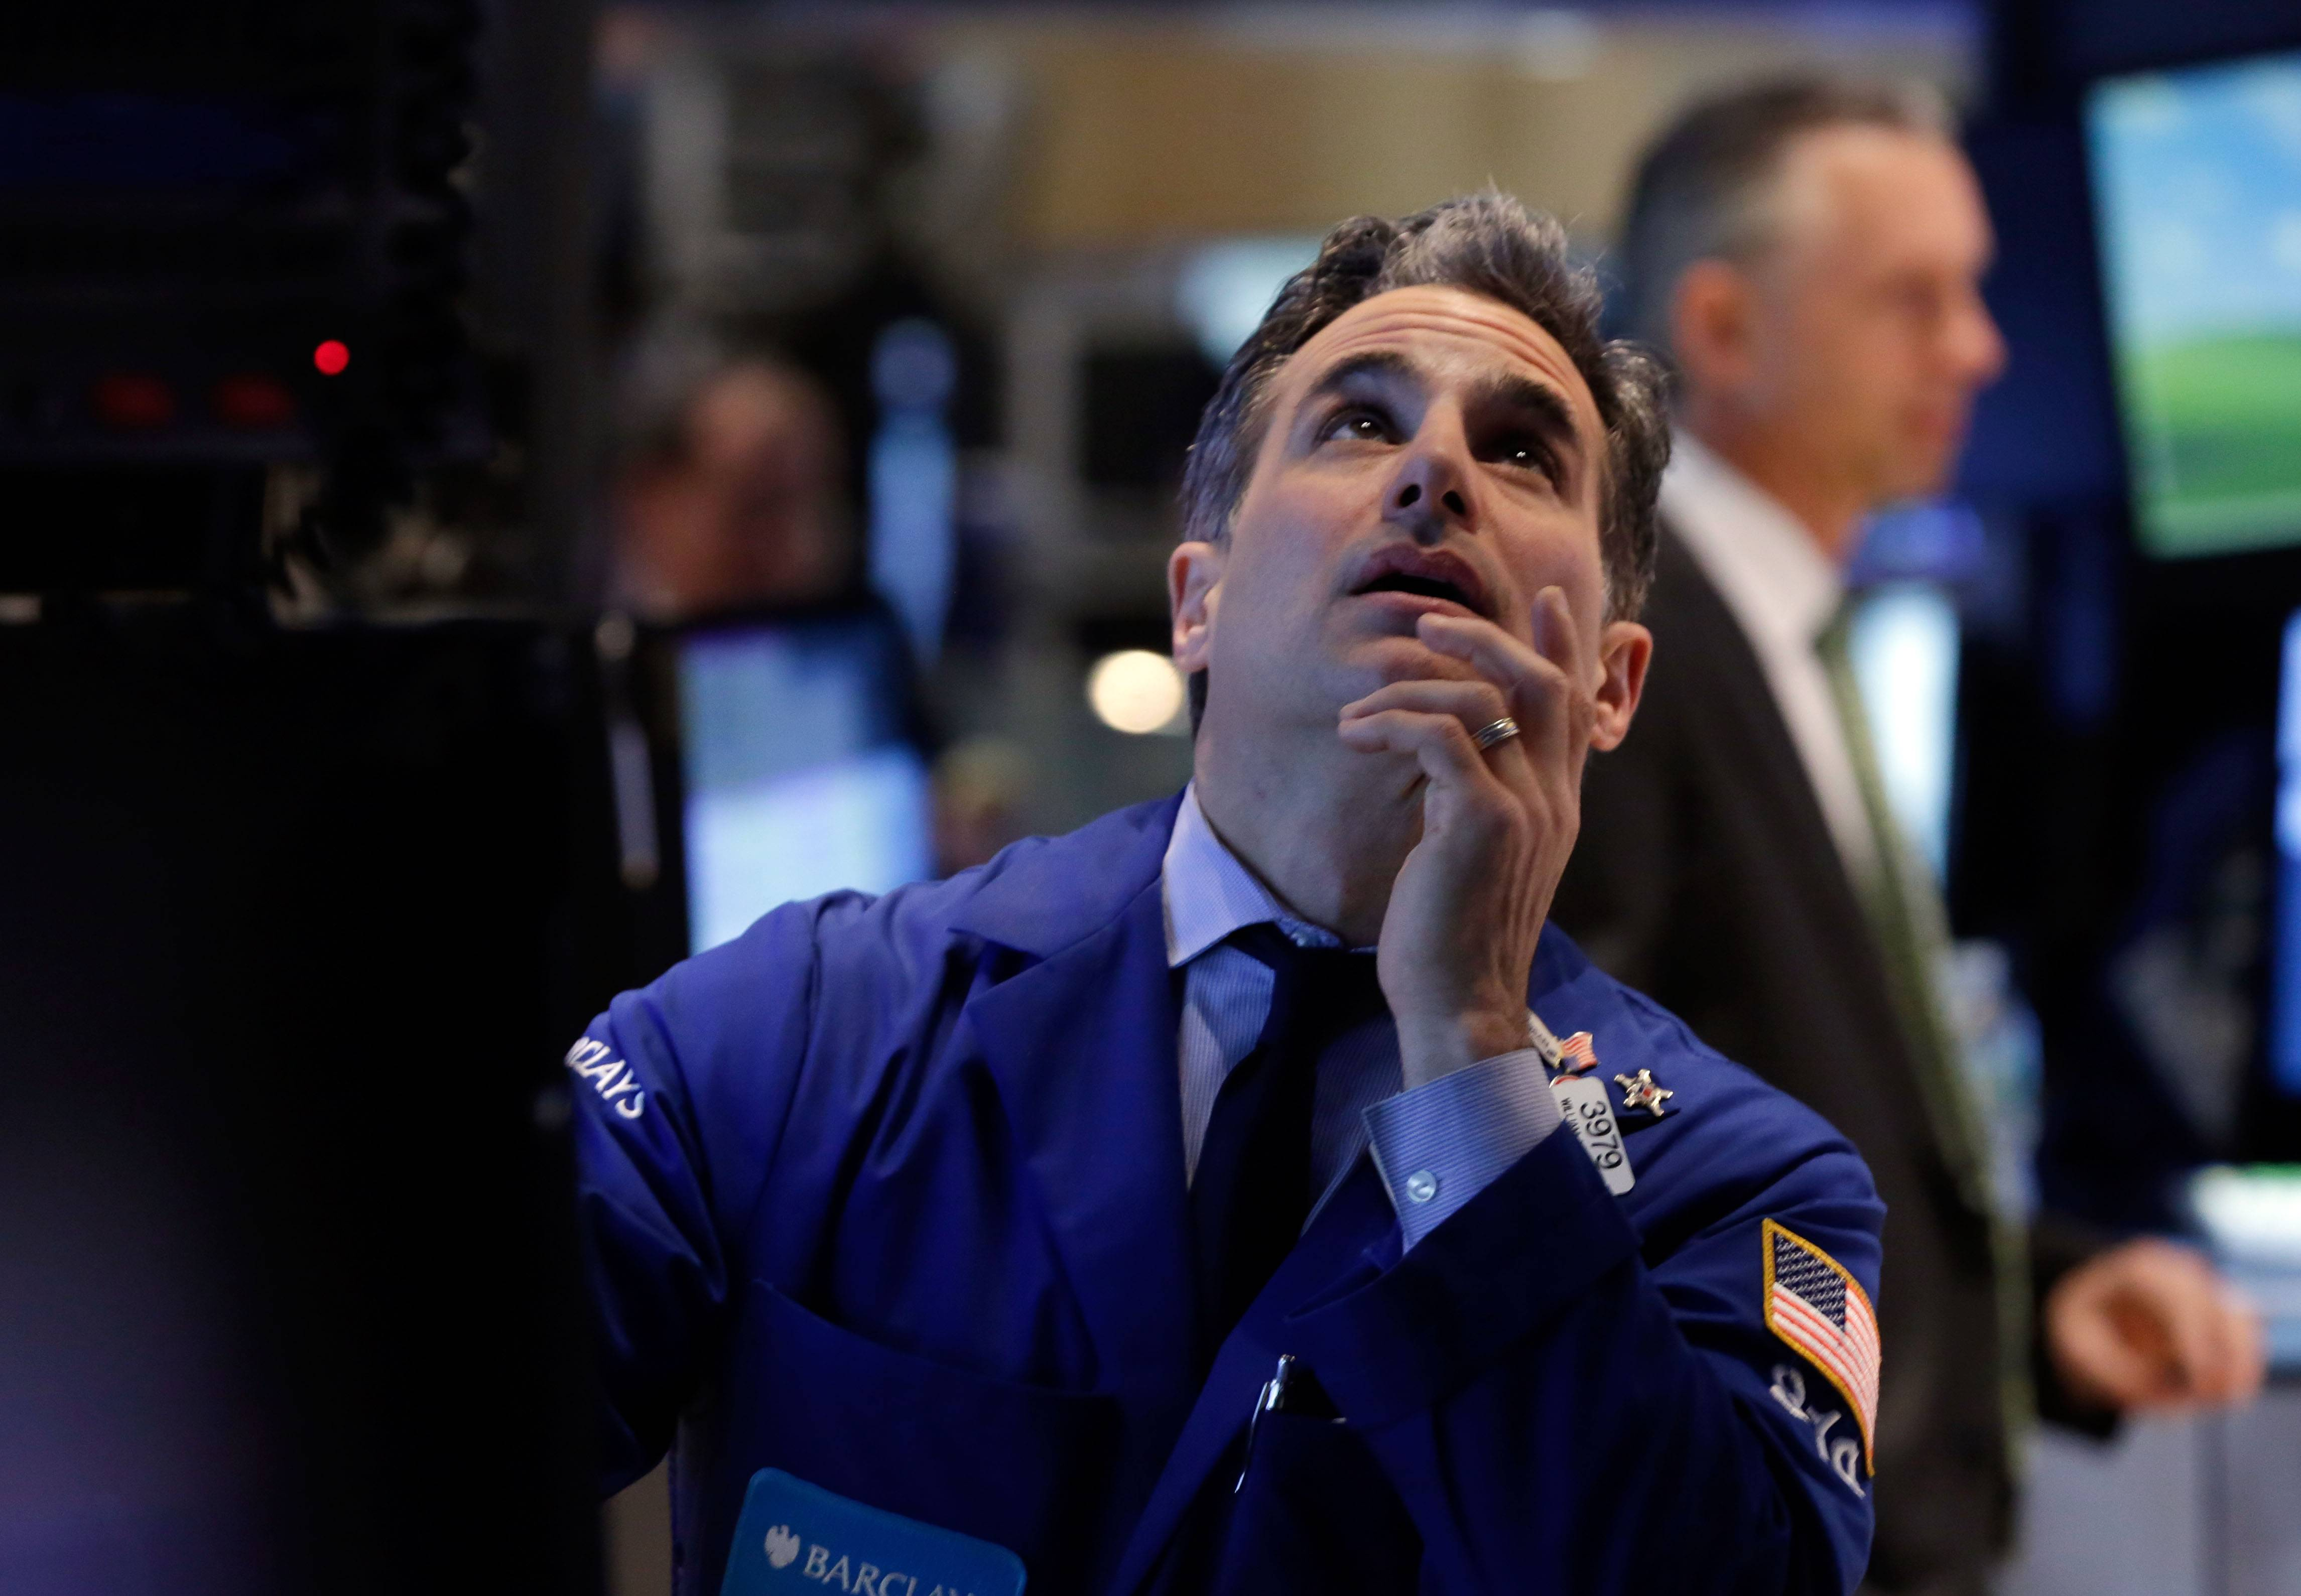 Specialist Anthony Rinaldi works at his post Friday on the floor of the New York Stock Exchange.